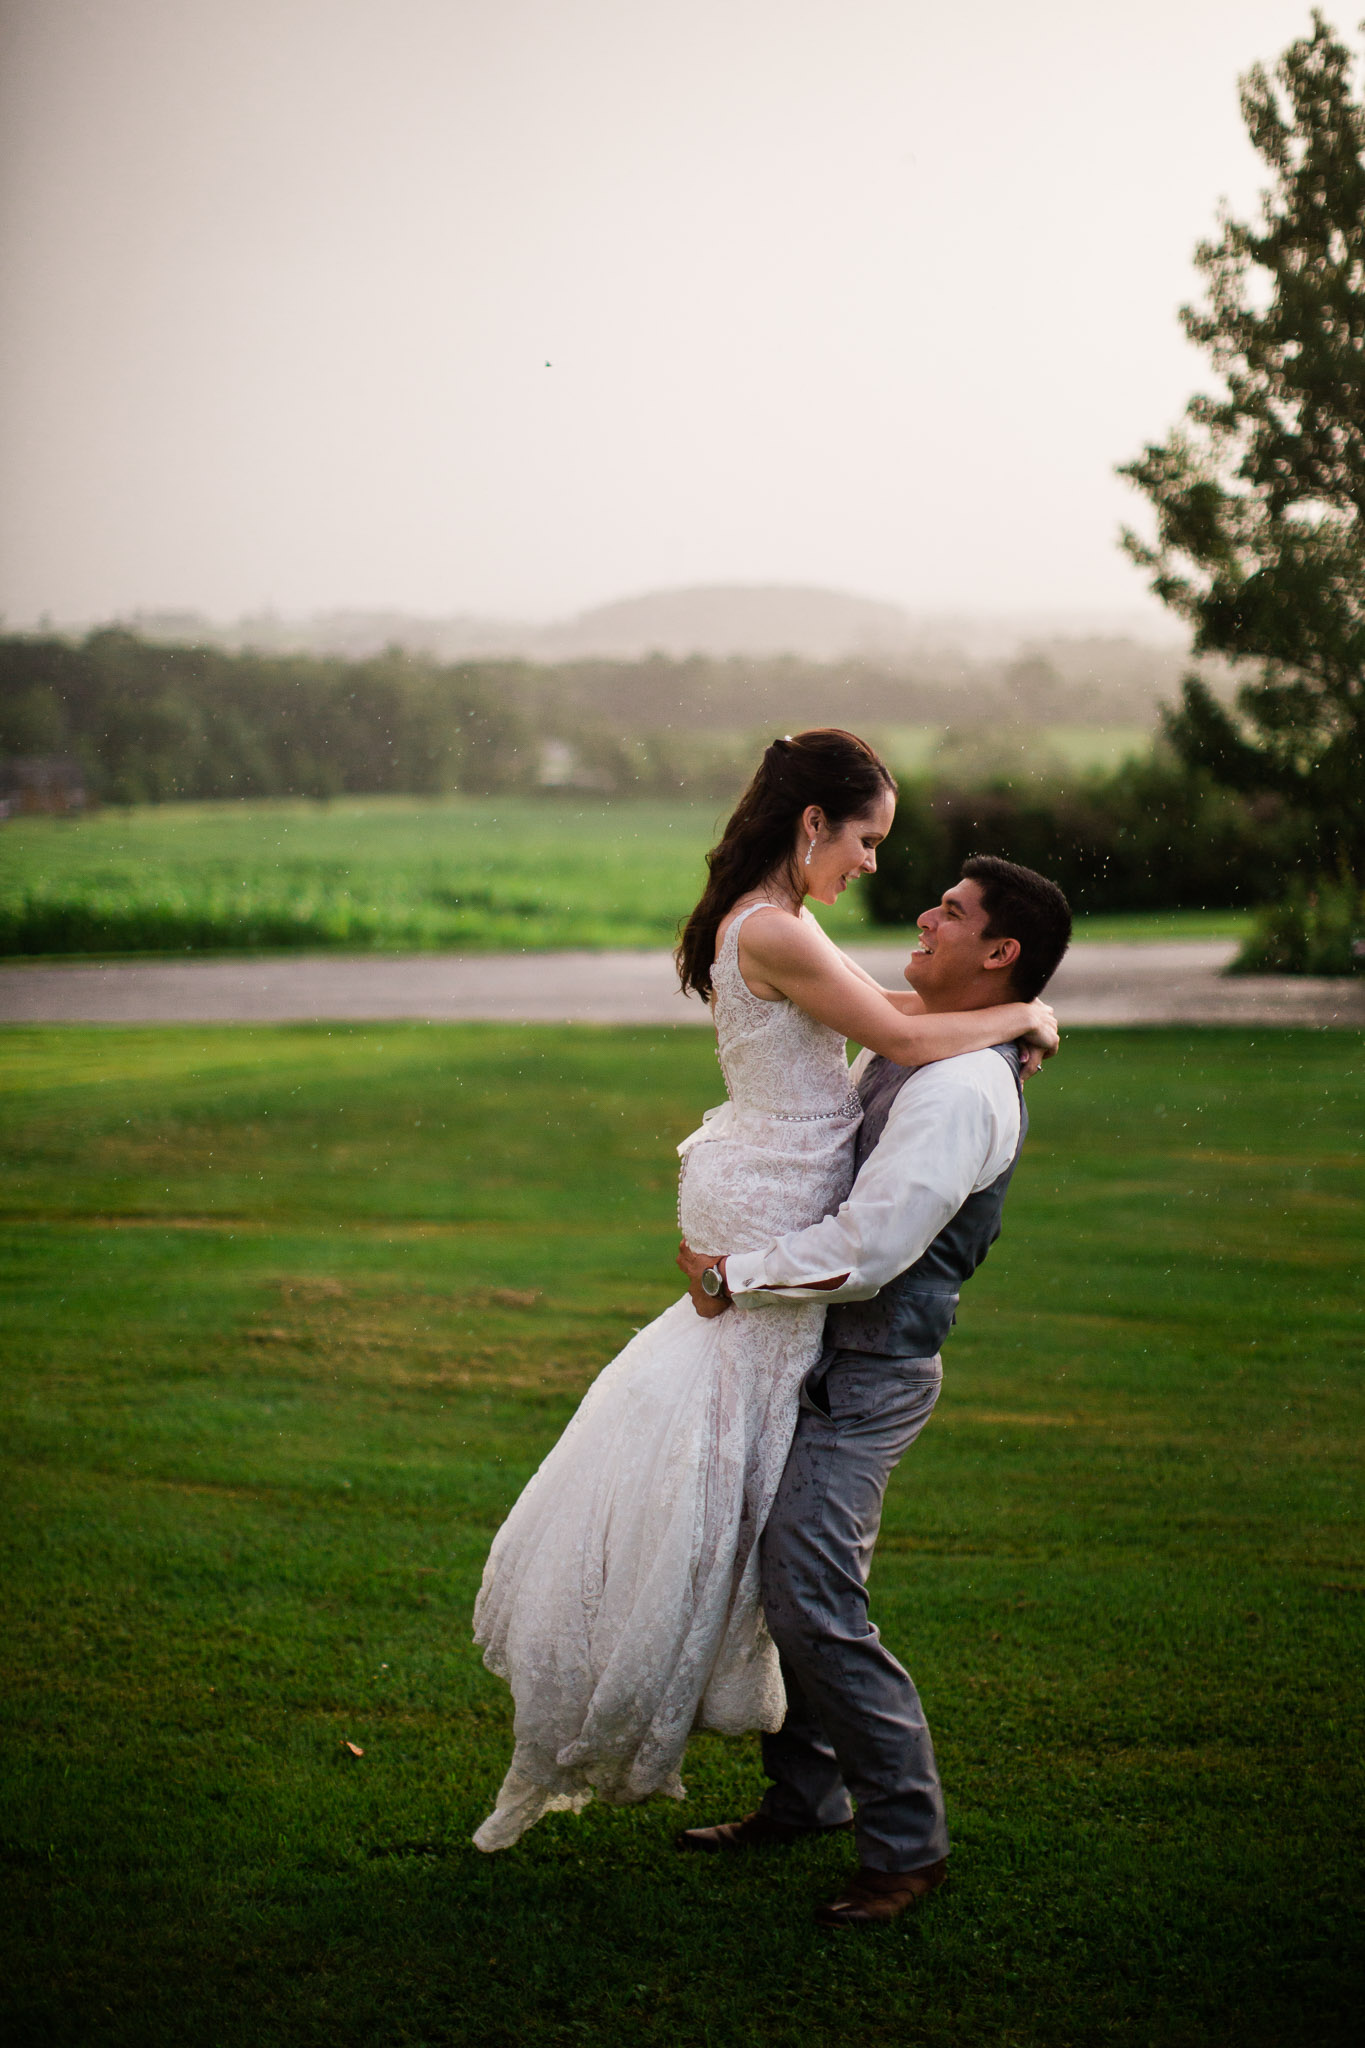 Sunset Wedding Portraits, Pittsburgh Wedding Photographer, The Event Barn at Highland Farms, Somerset PA-5579.jpg